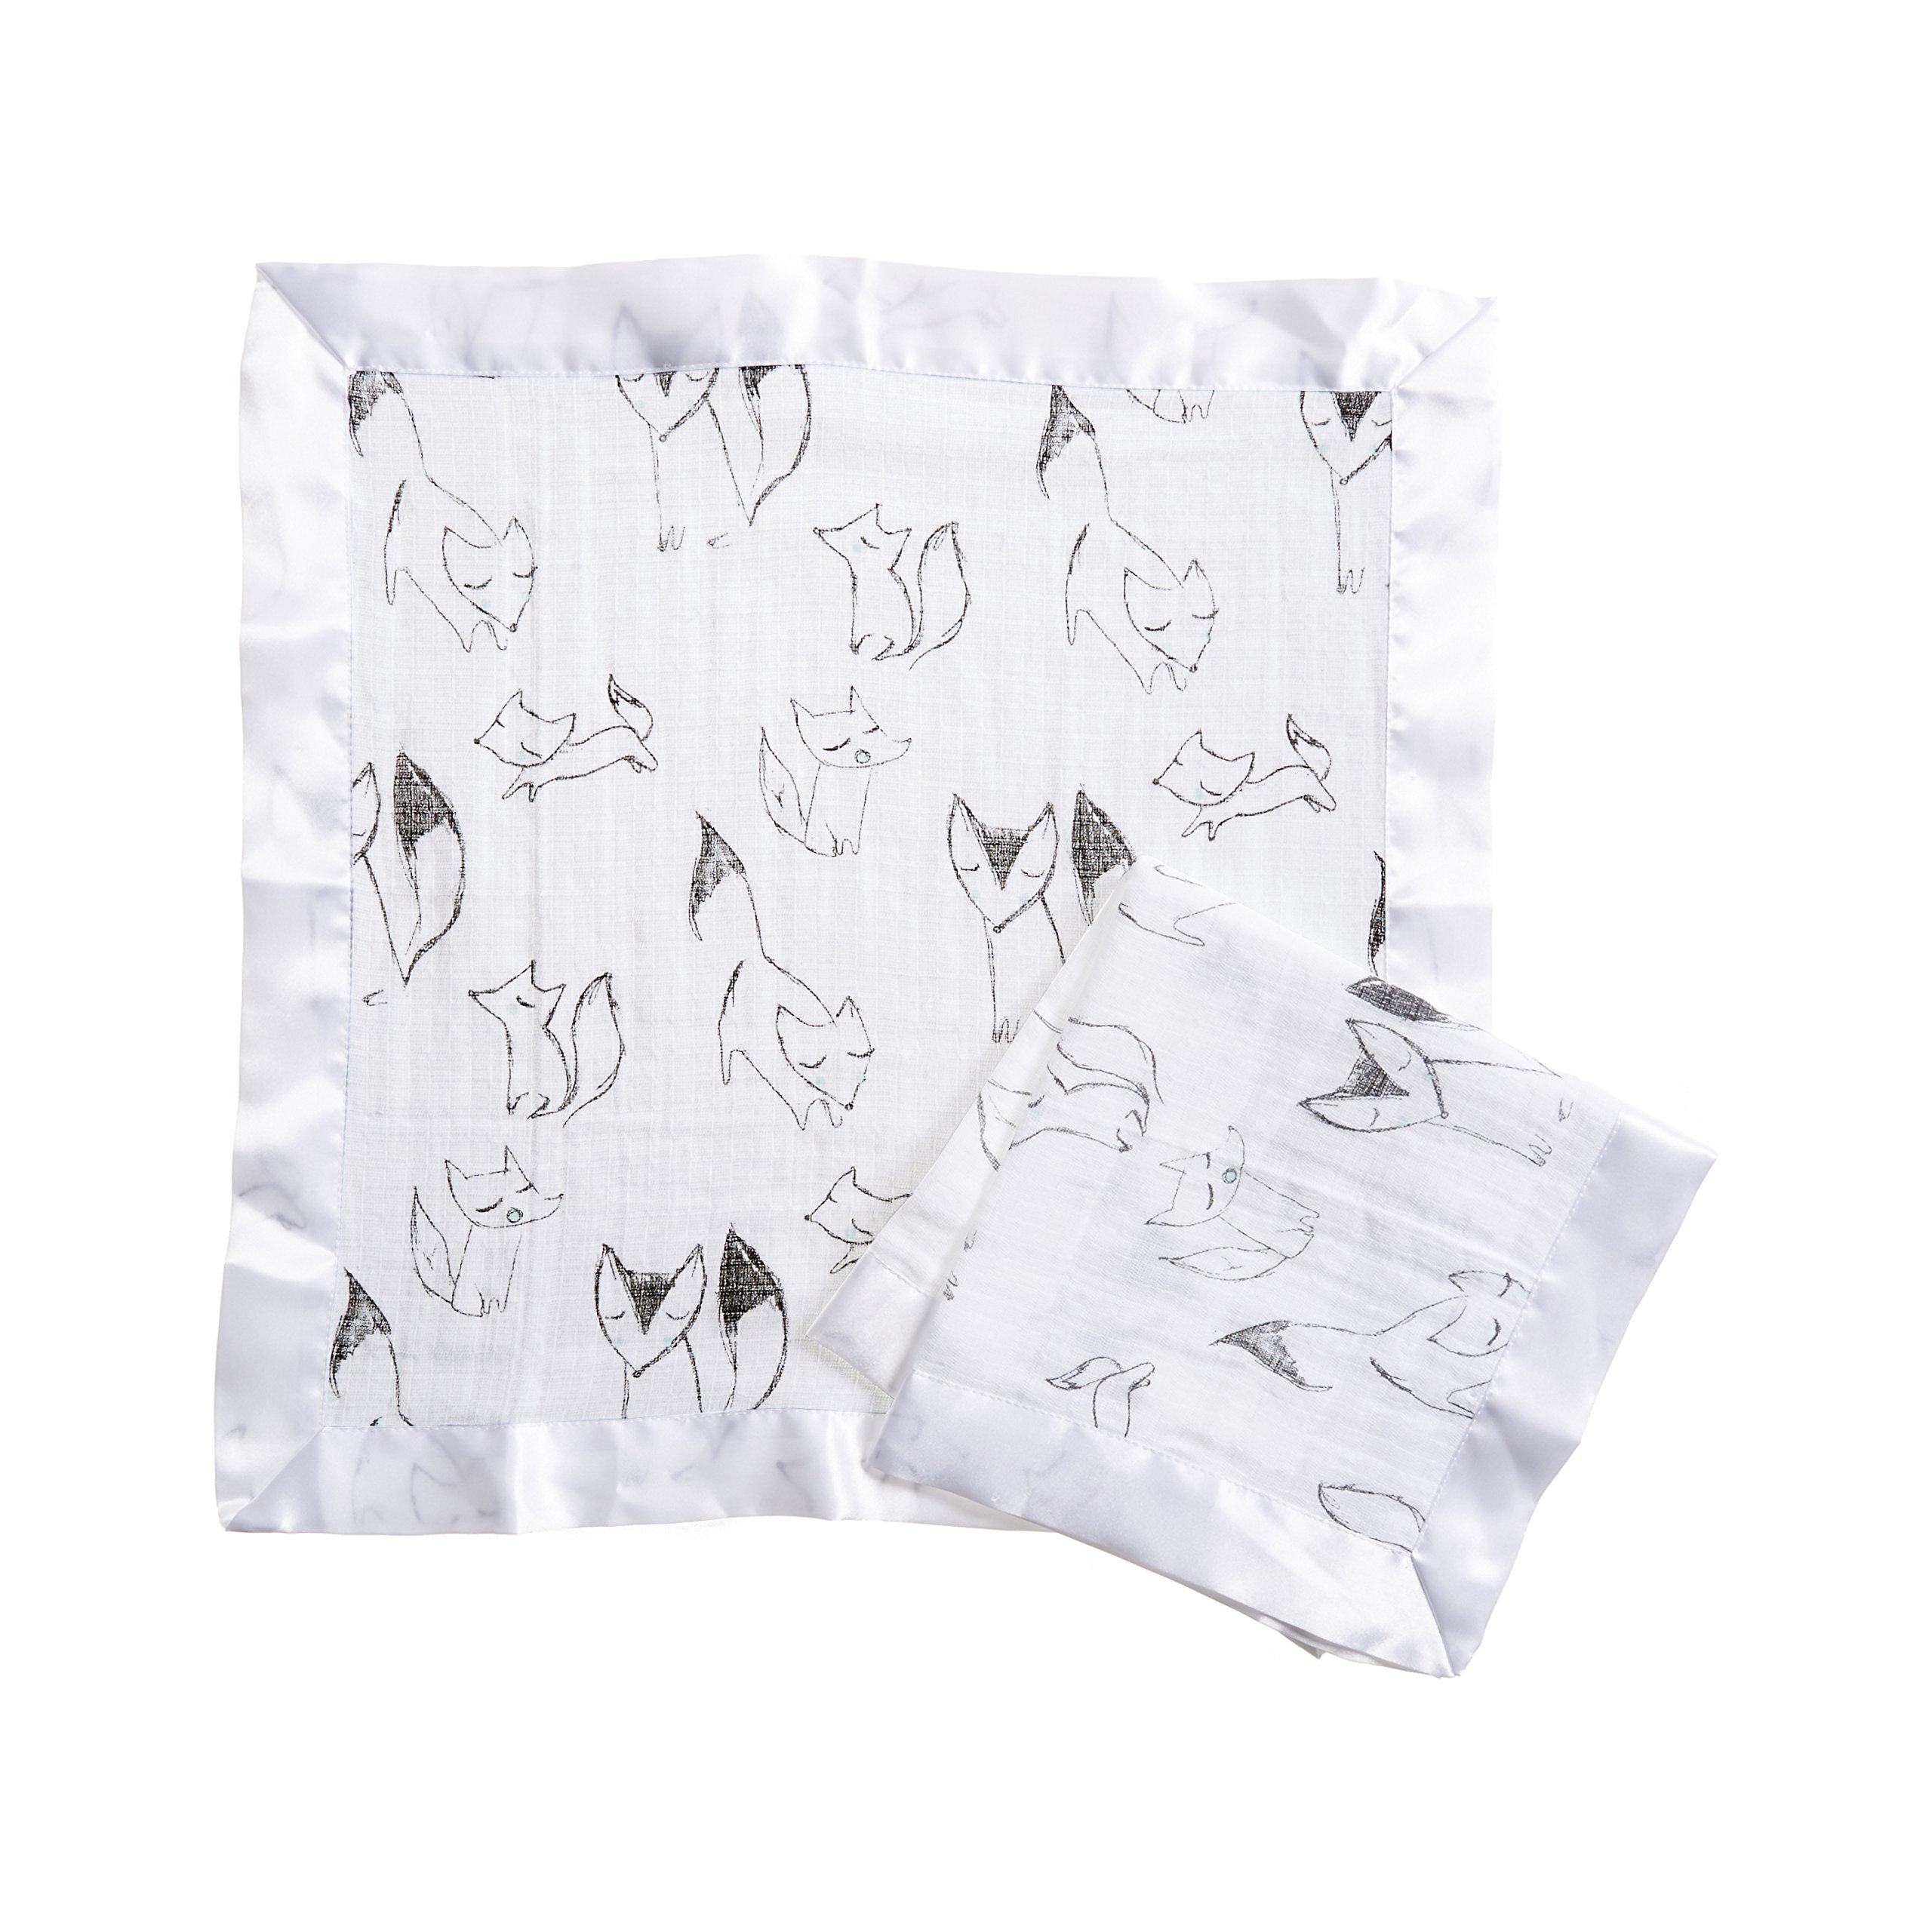 Aden by Aden + Anais Issie Security Blanket, Super Soft 100% Cotton Muslin, 2 Pack, Trotting Fox